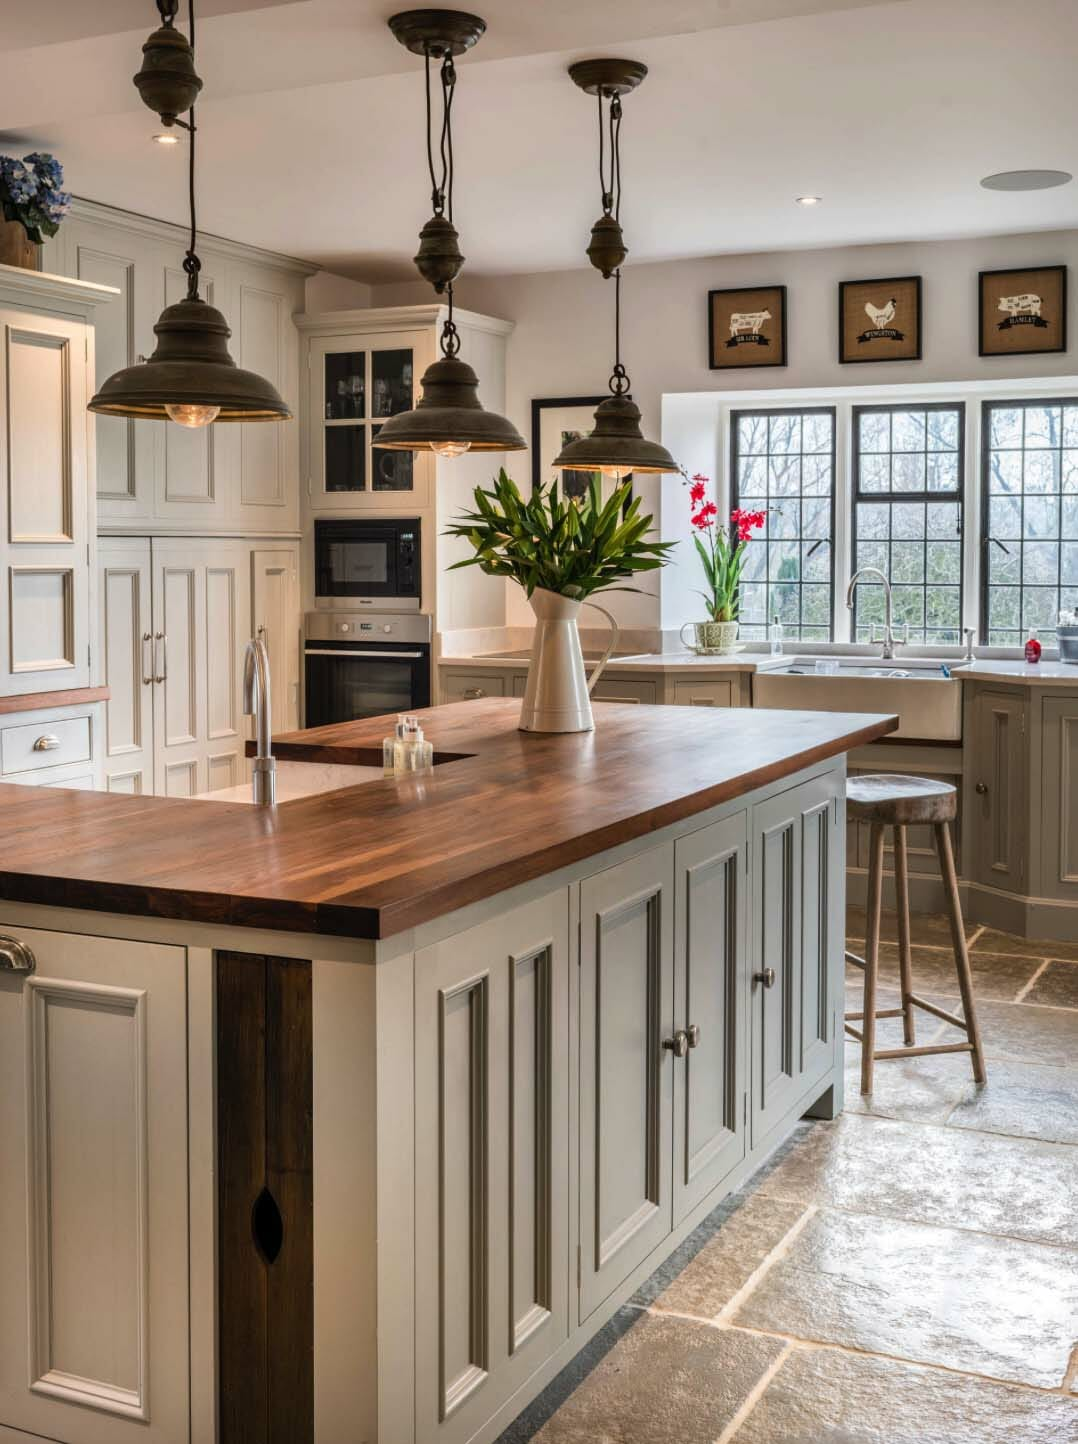 All In The Detail Farmhouse Kitchen Sourcing